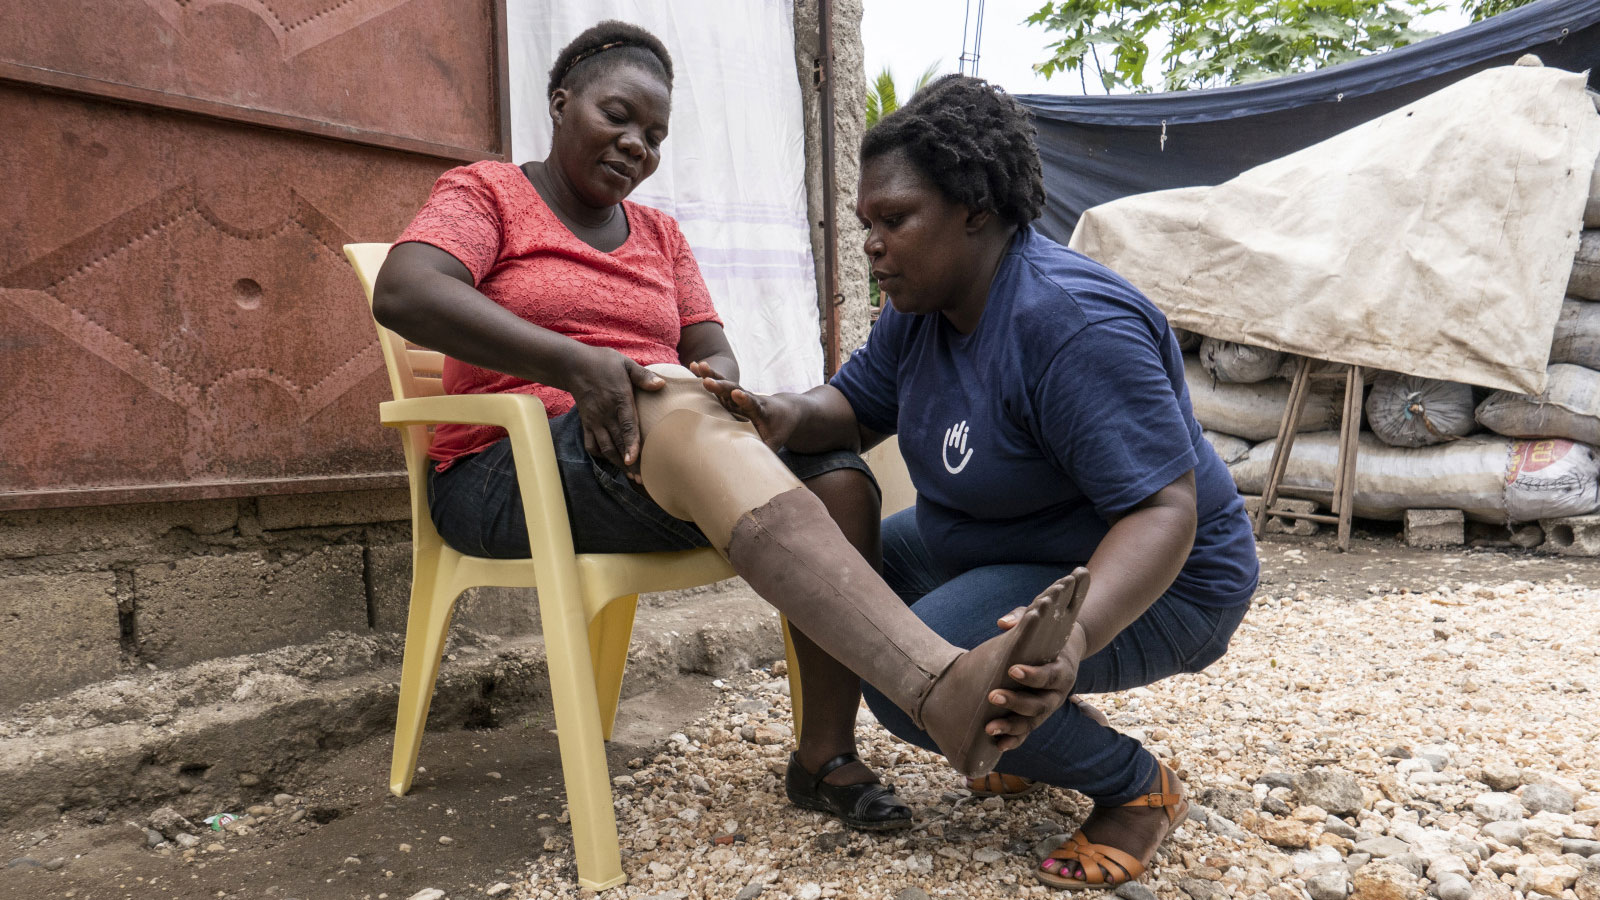 Marie -an-HI-physical-therapist -helps-Maryse-put-on-her-prosthetic-limb-in-Haiti